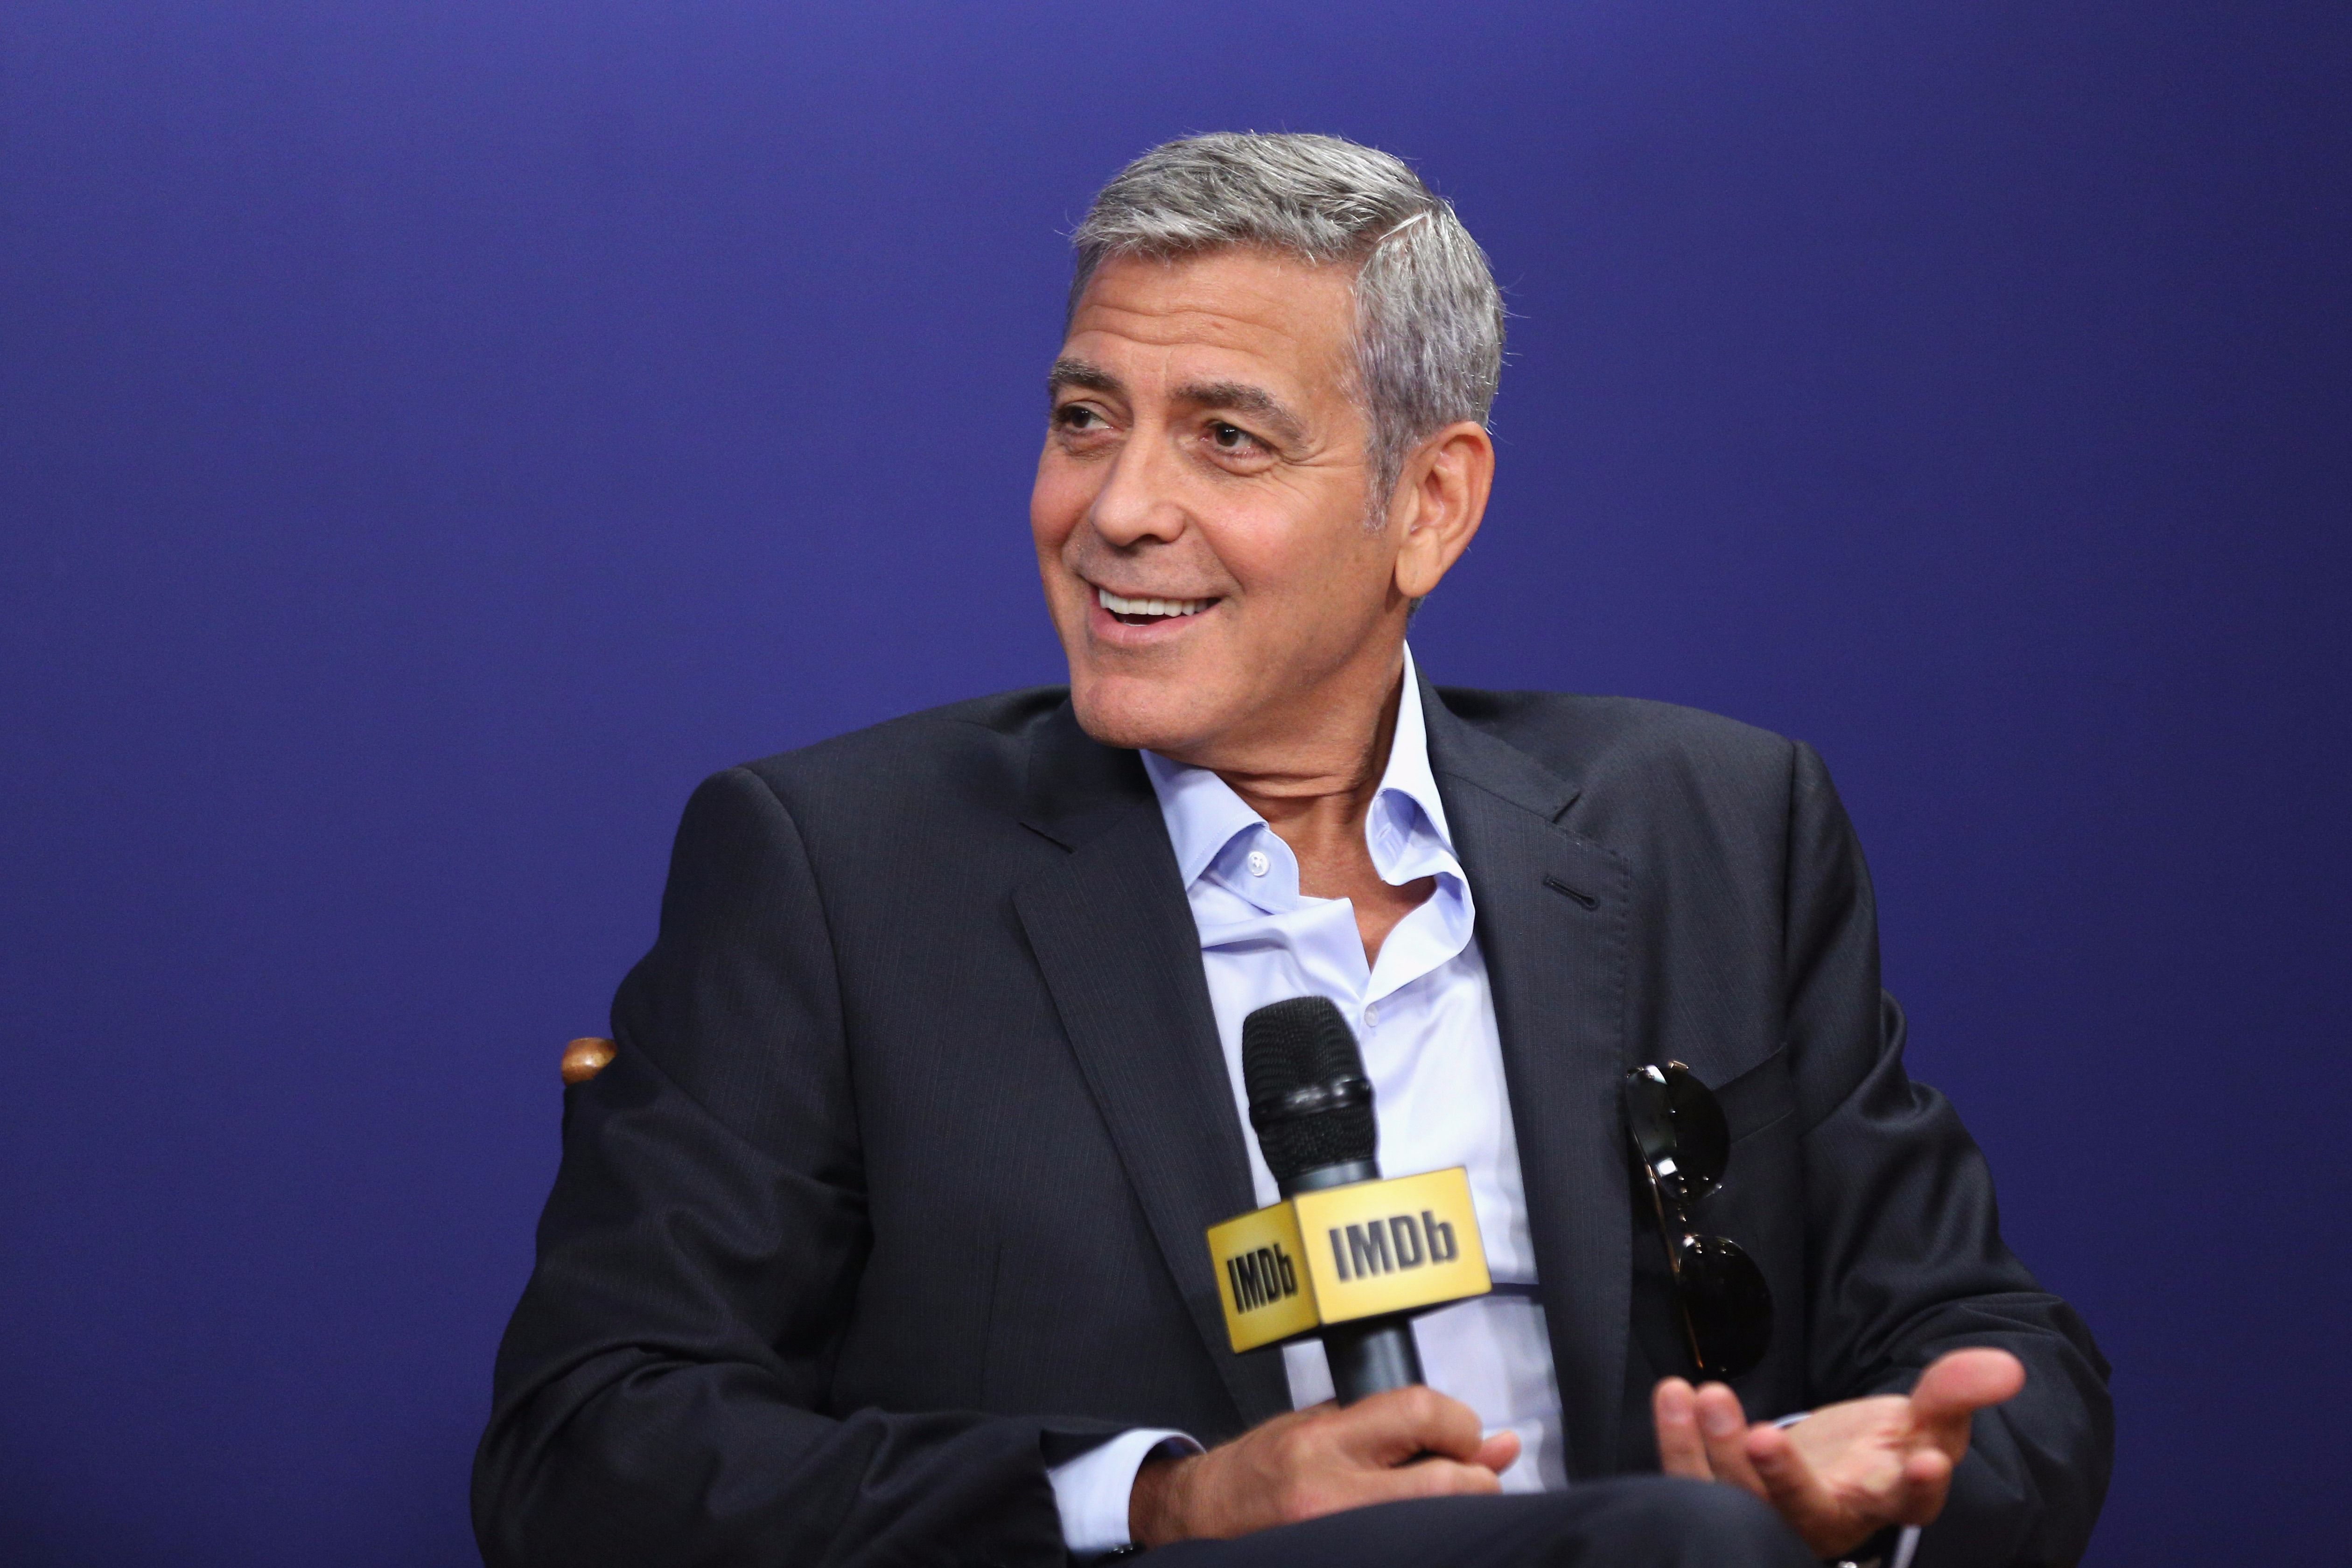 George Clooney to Star in 'Catch-22' Adaptation From Paramount TV